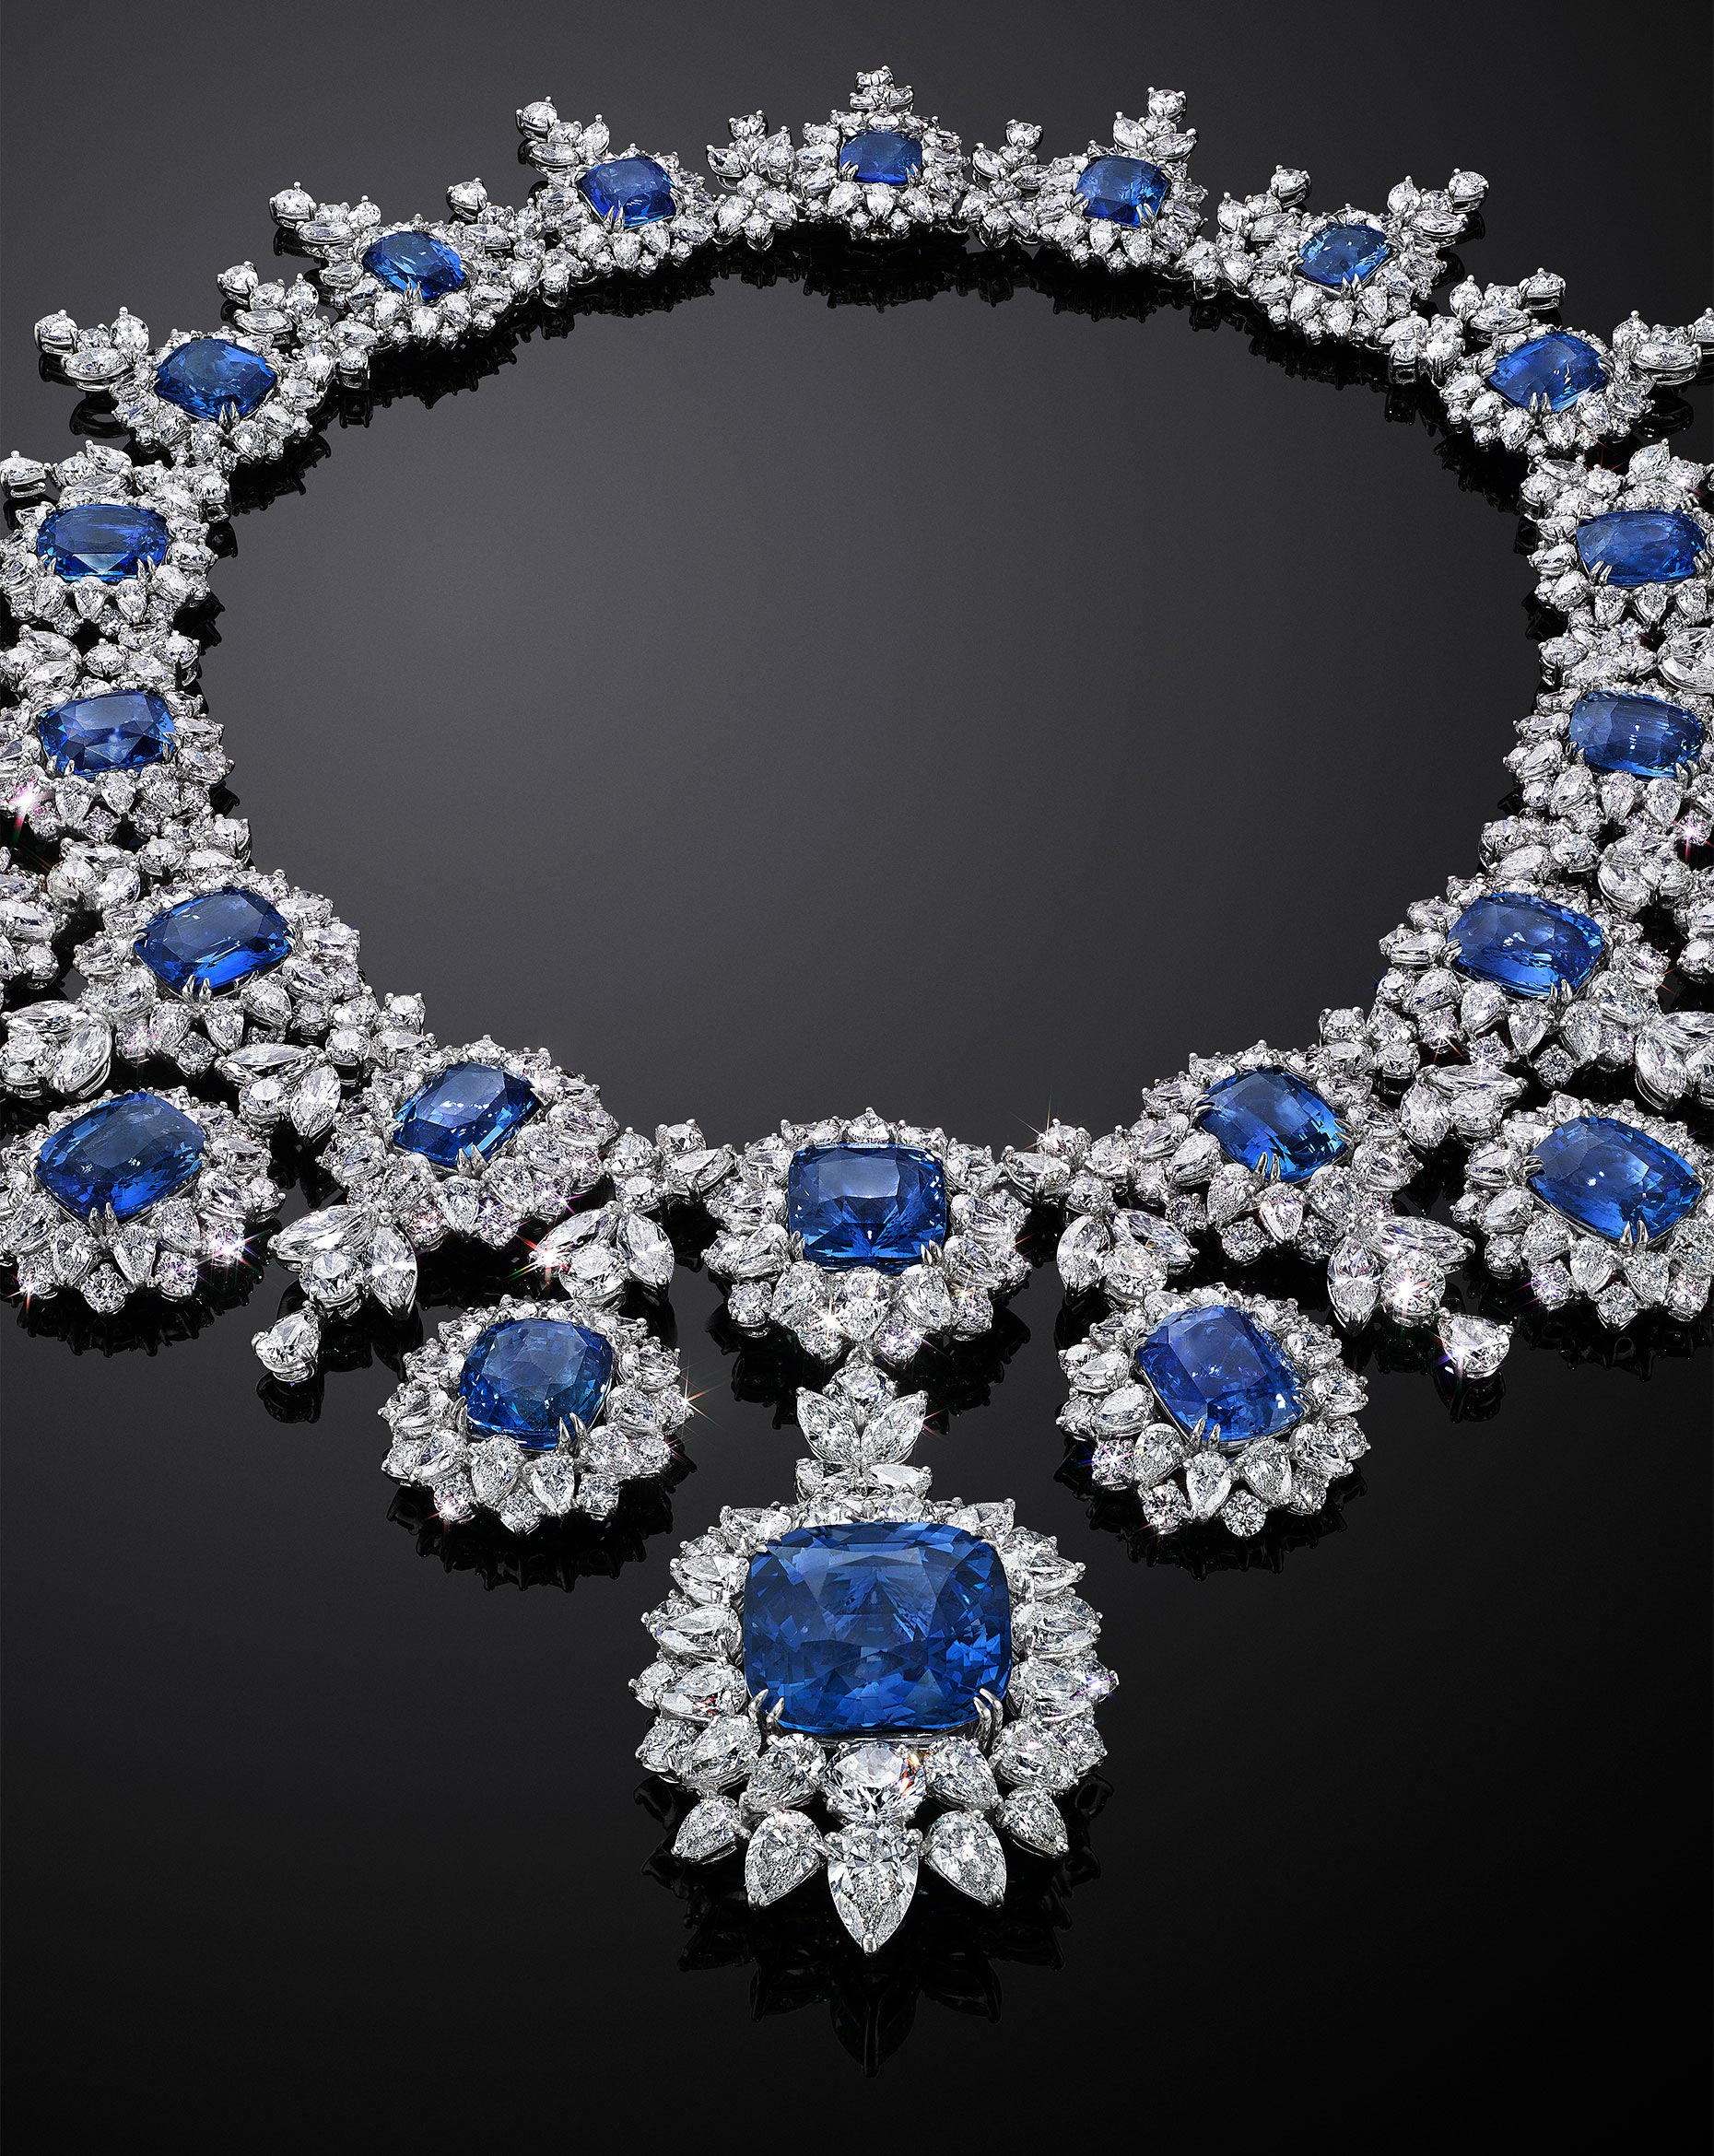 SapphireDiamondNecklace_OnBlack